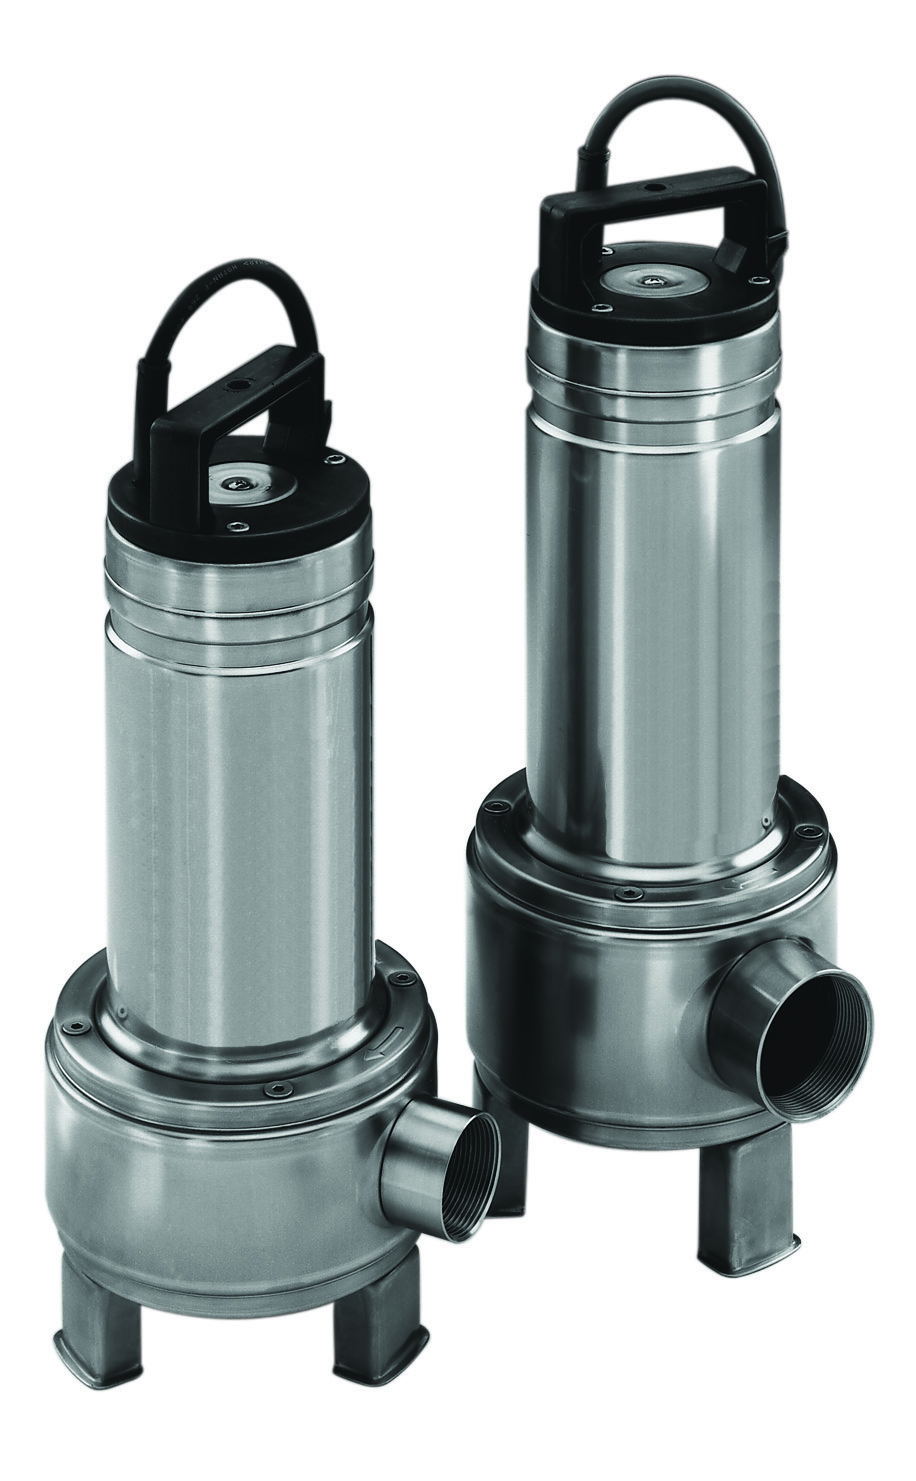 1NS/2NS Submersible Sewage Pump